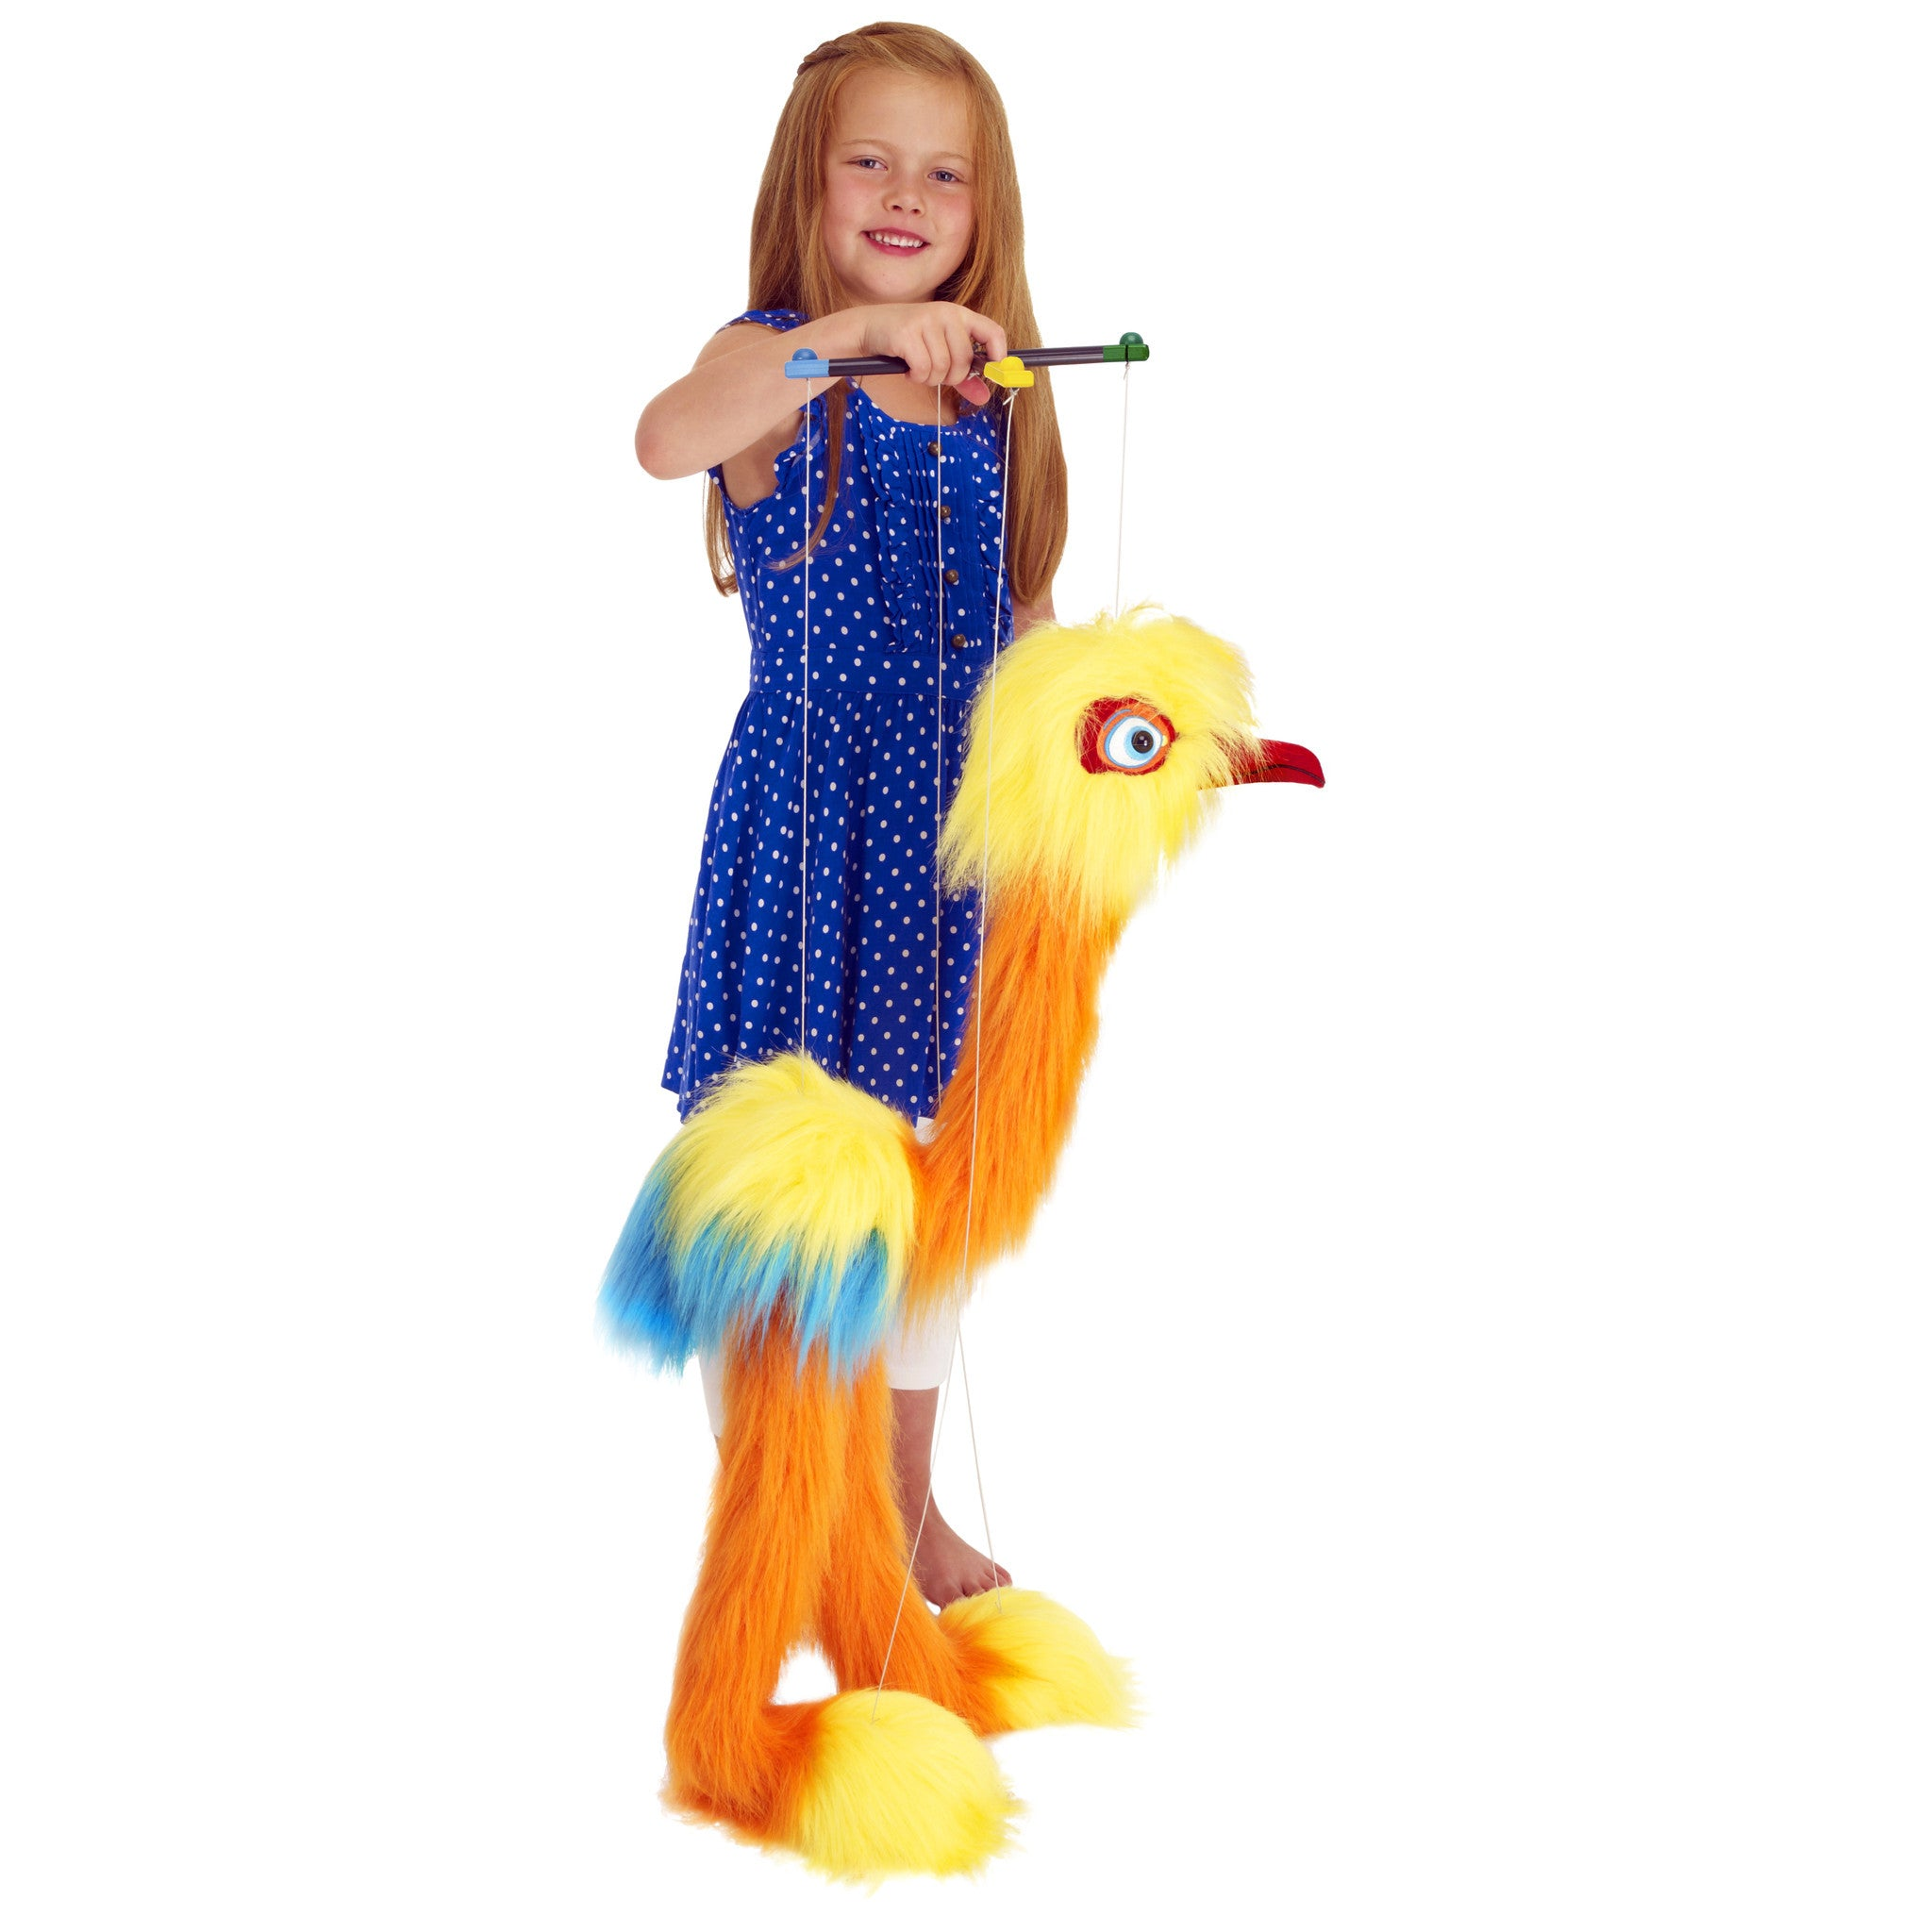 Marionette Giant Birds - Tropical Bird operated by girl